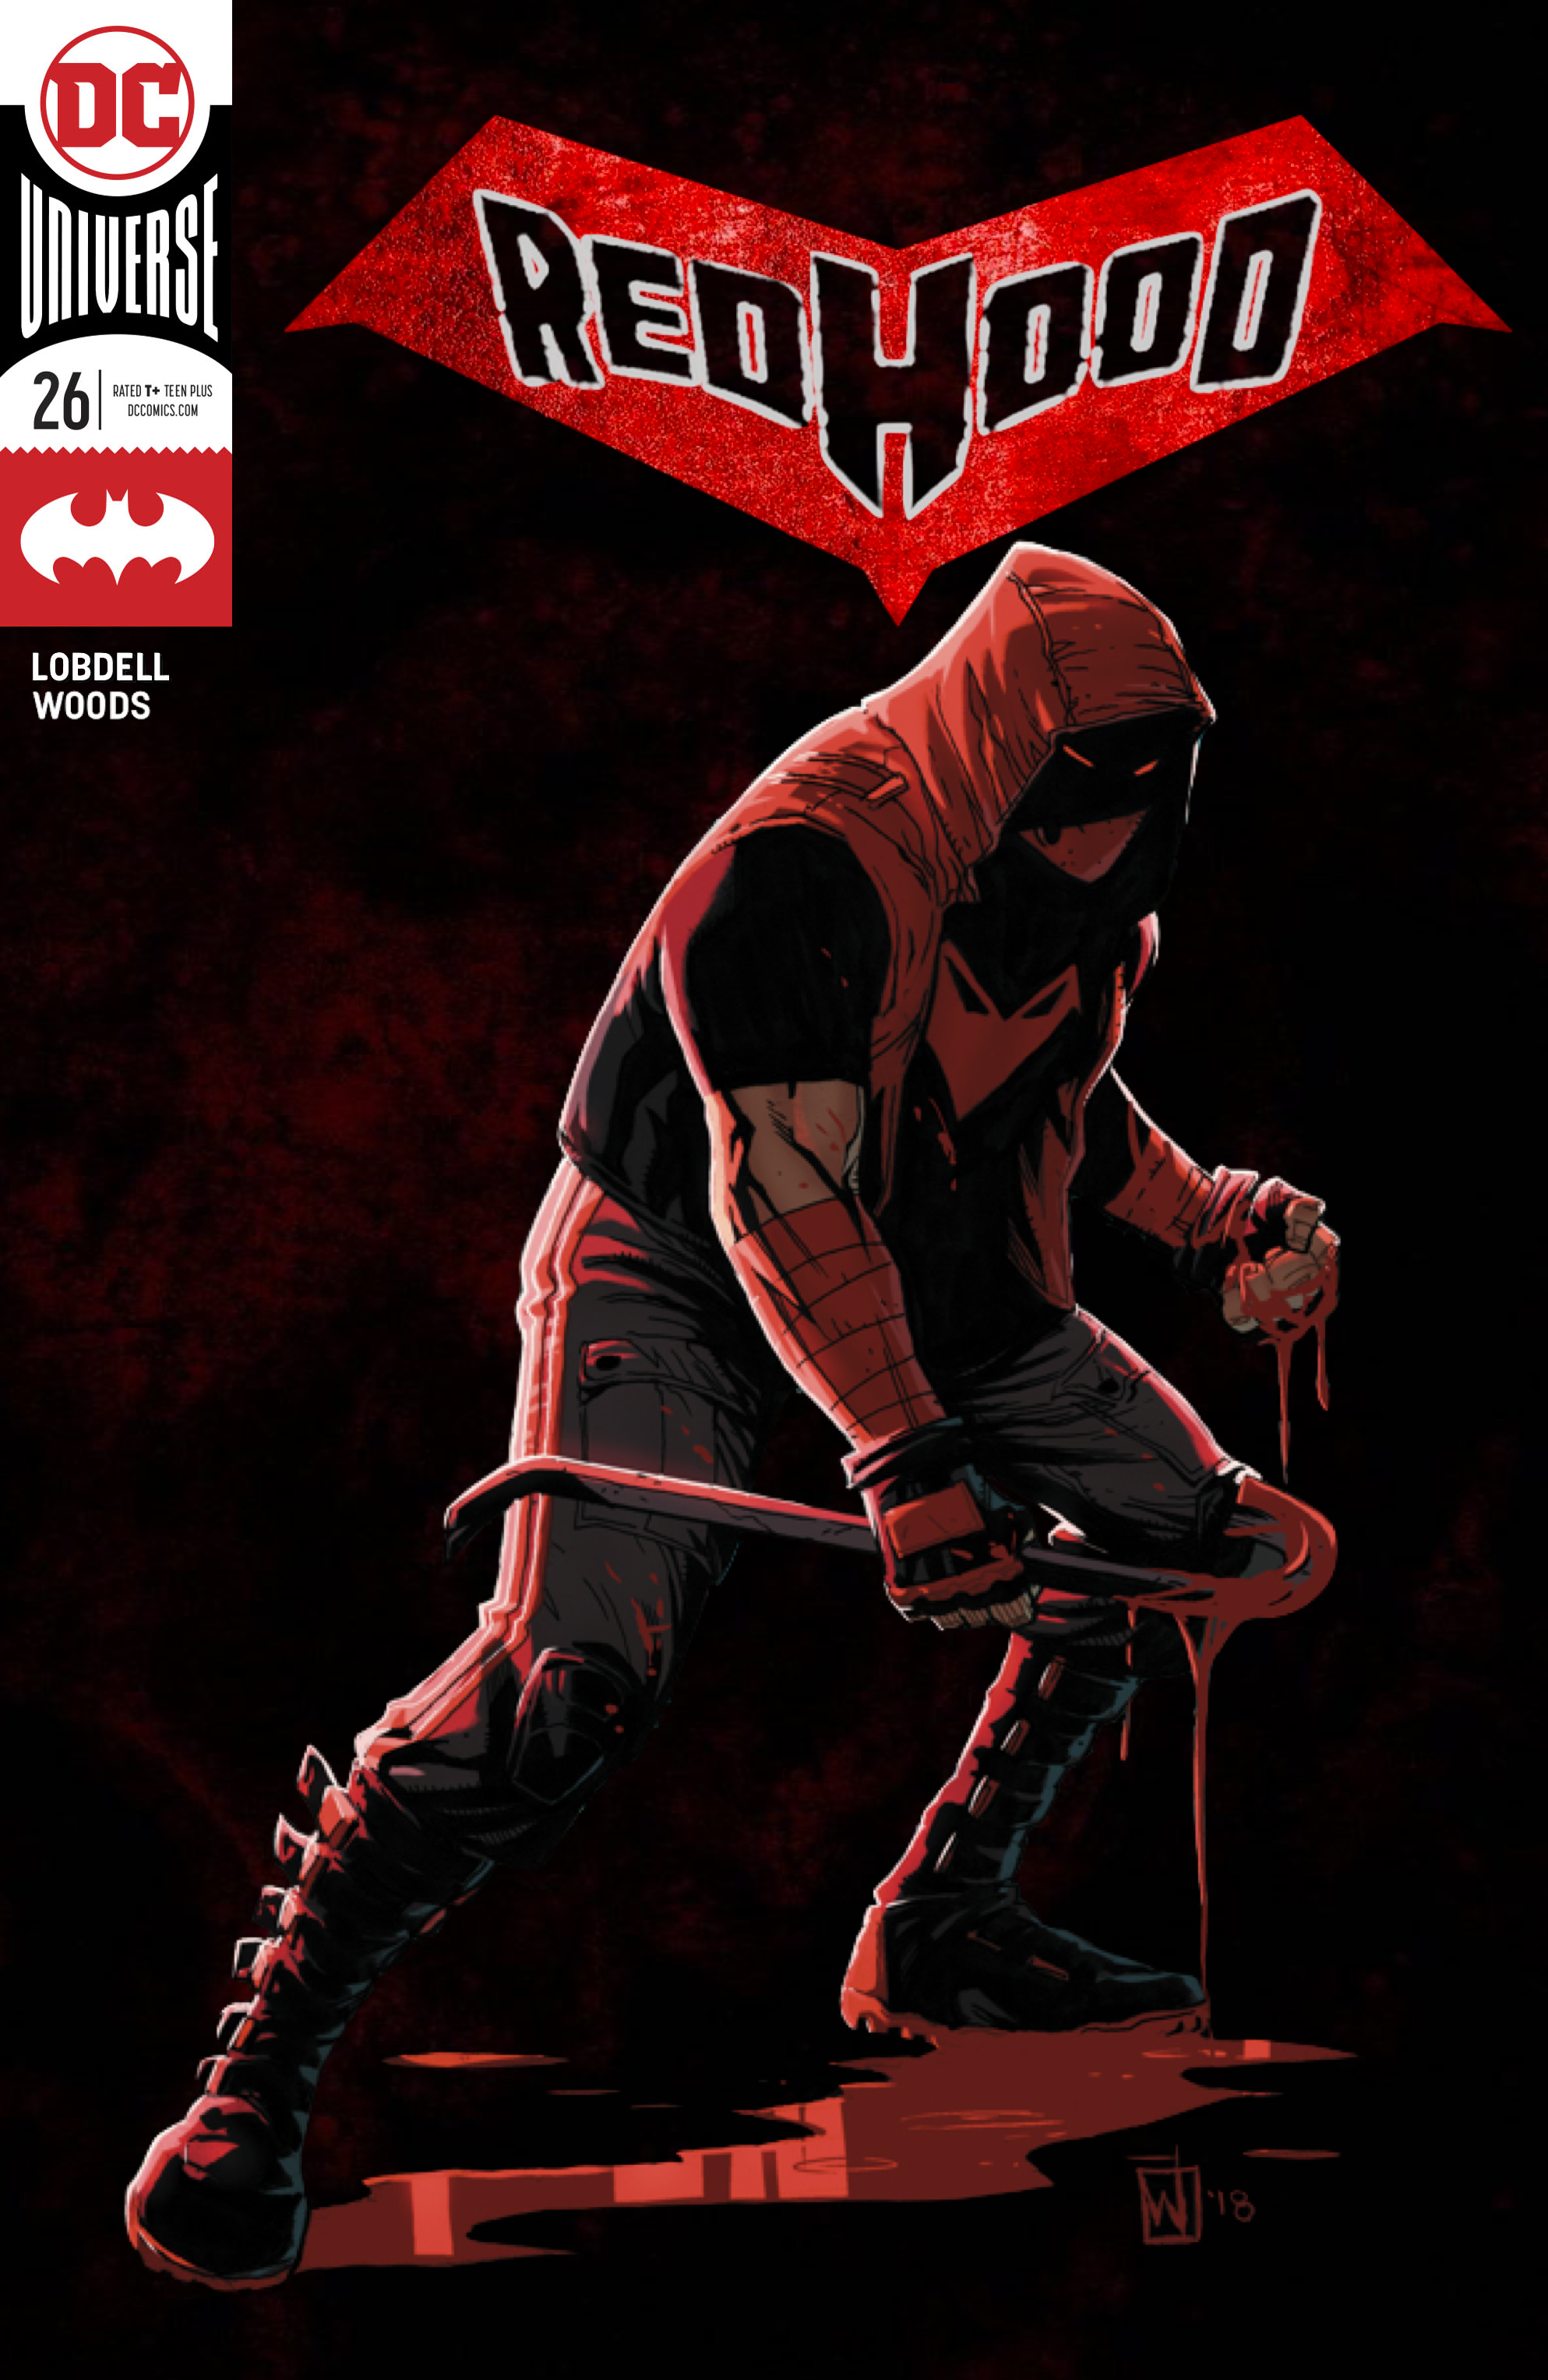 Lovin' the new direction for Red Hood, so I made a mock-up cover with the trade dress and custom logo [Art by Pete Woods] 4K